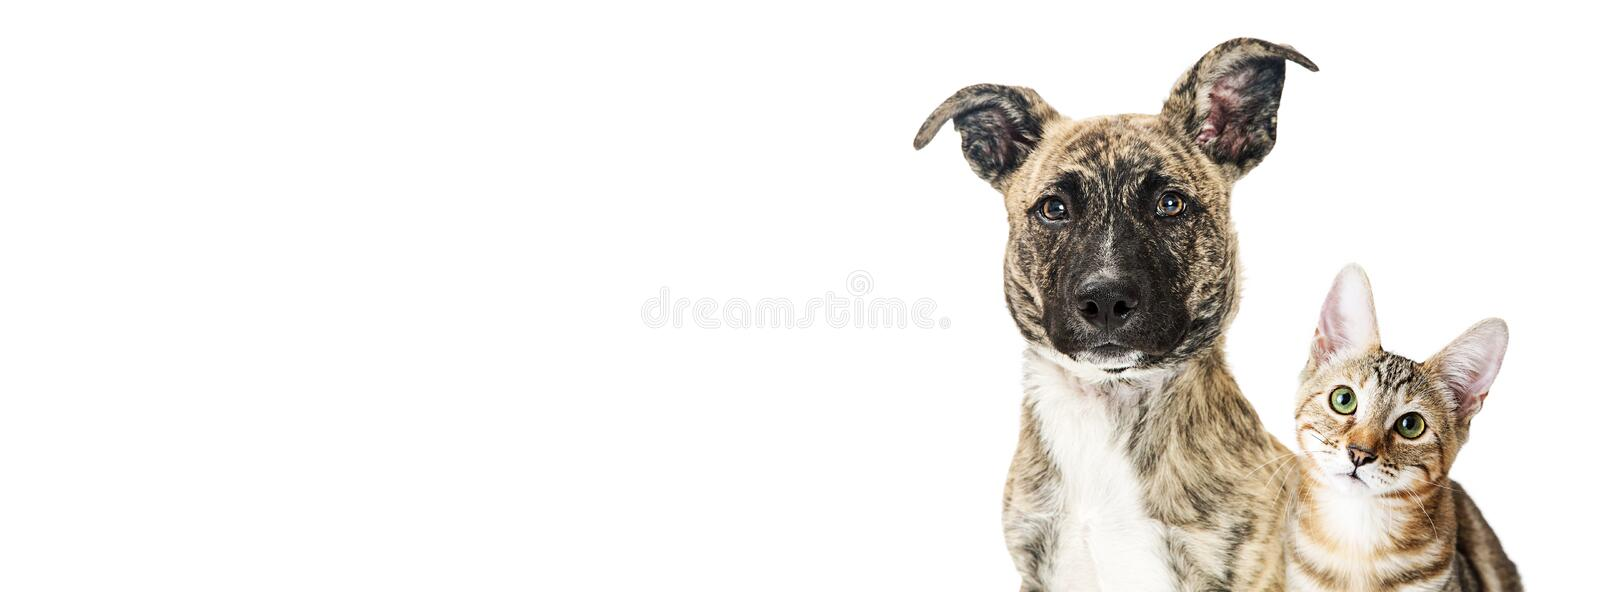 Dog and kitten closeup white banner stock photography